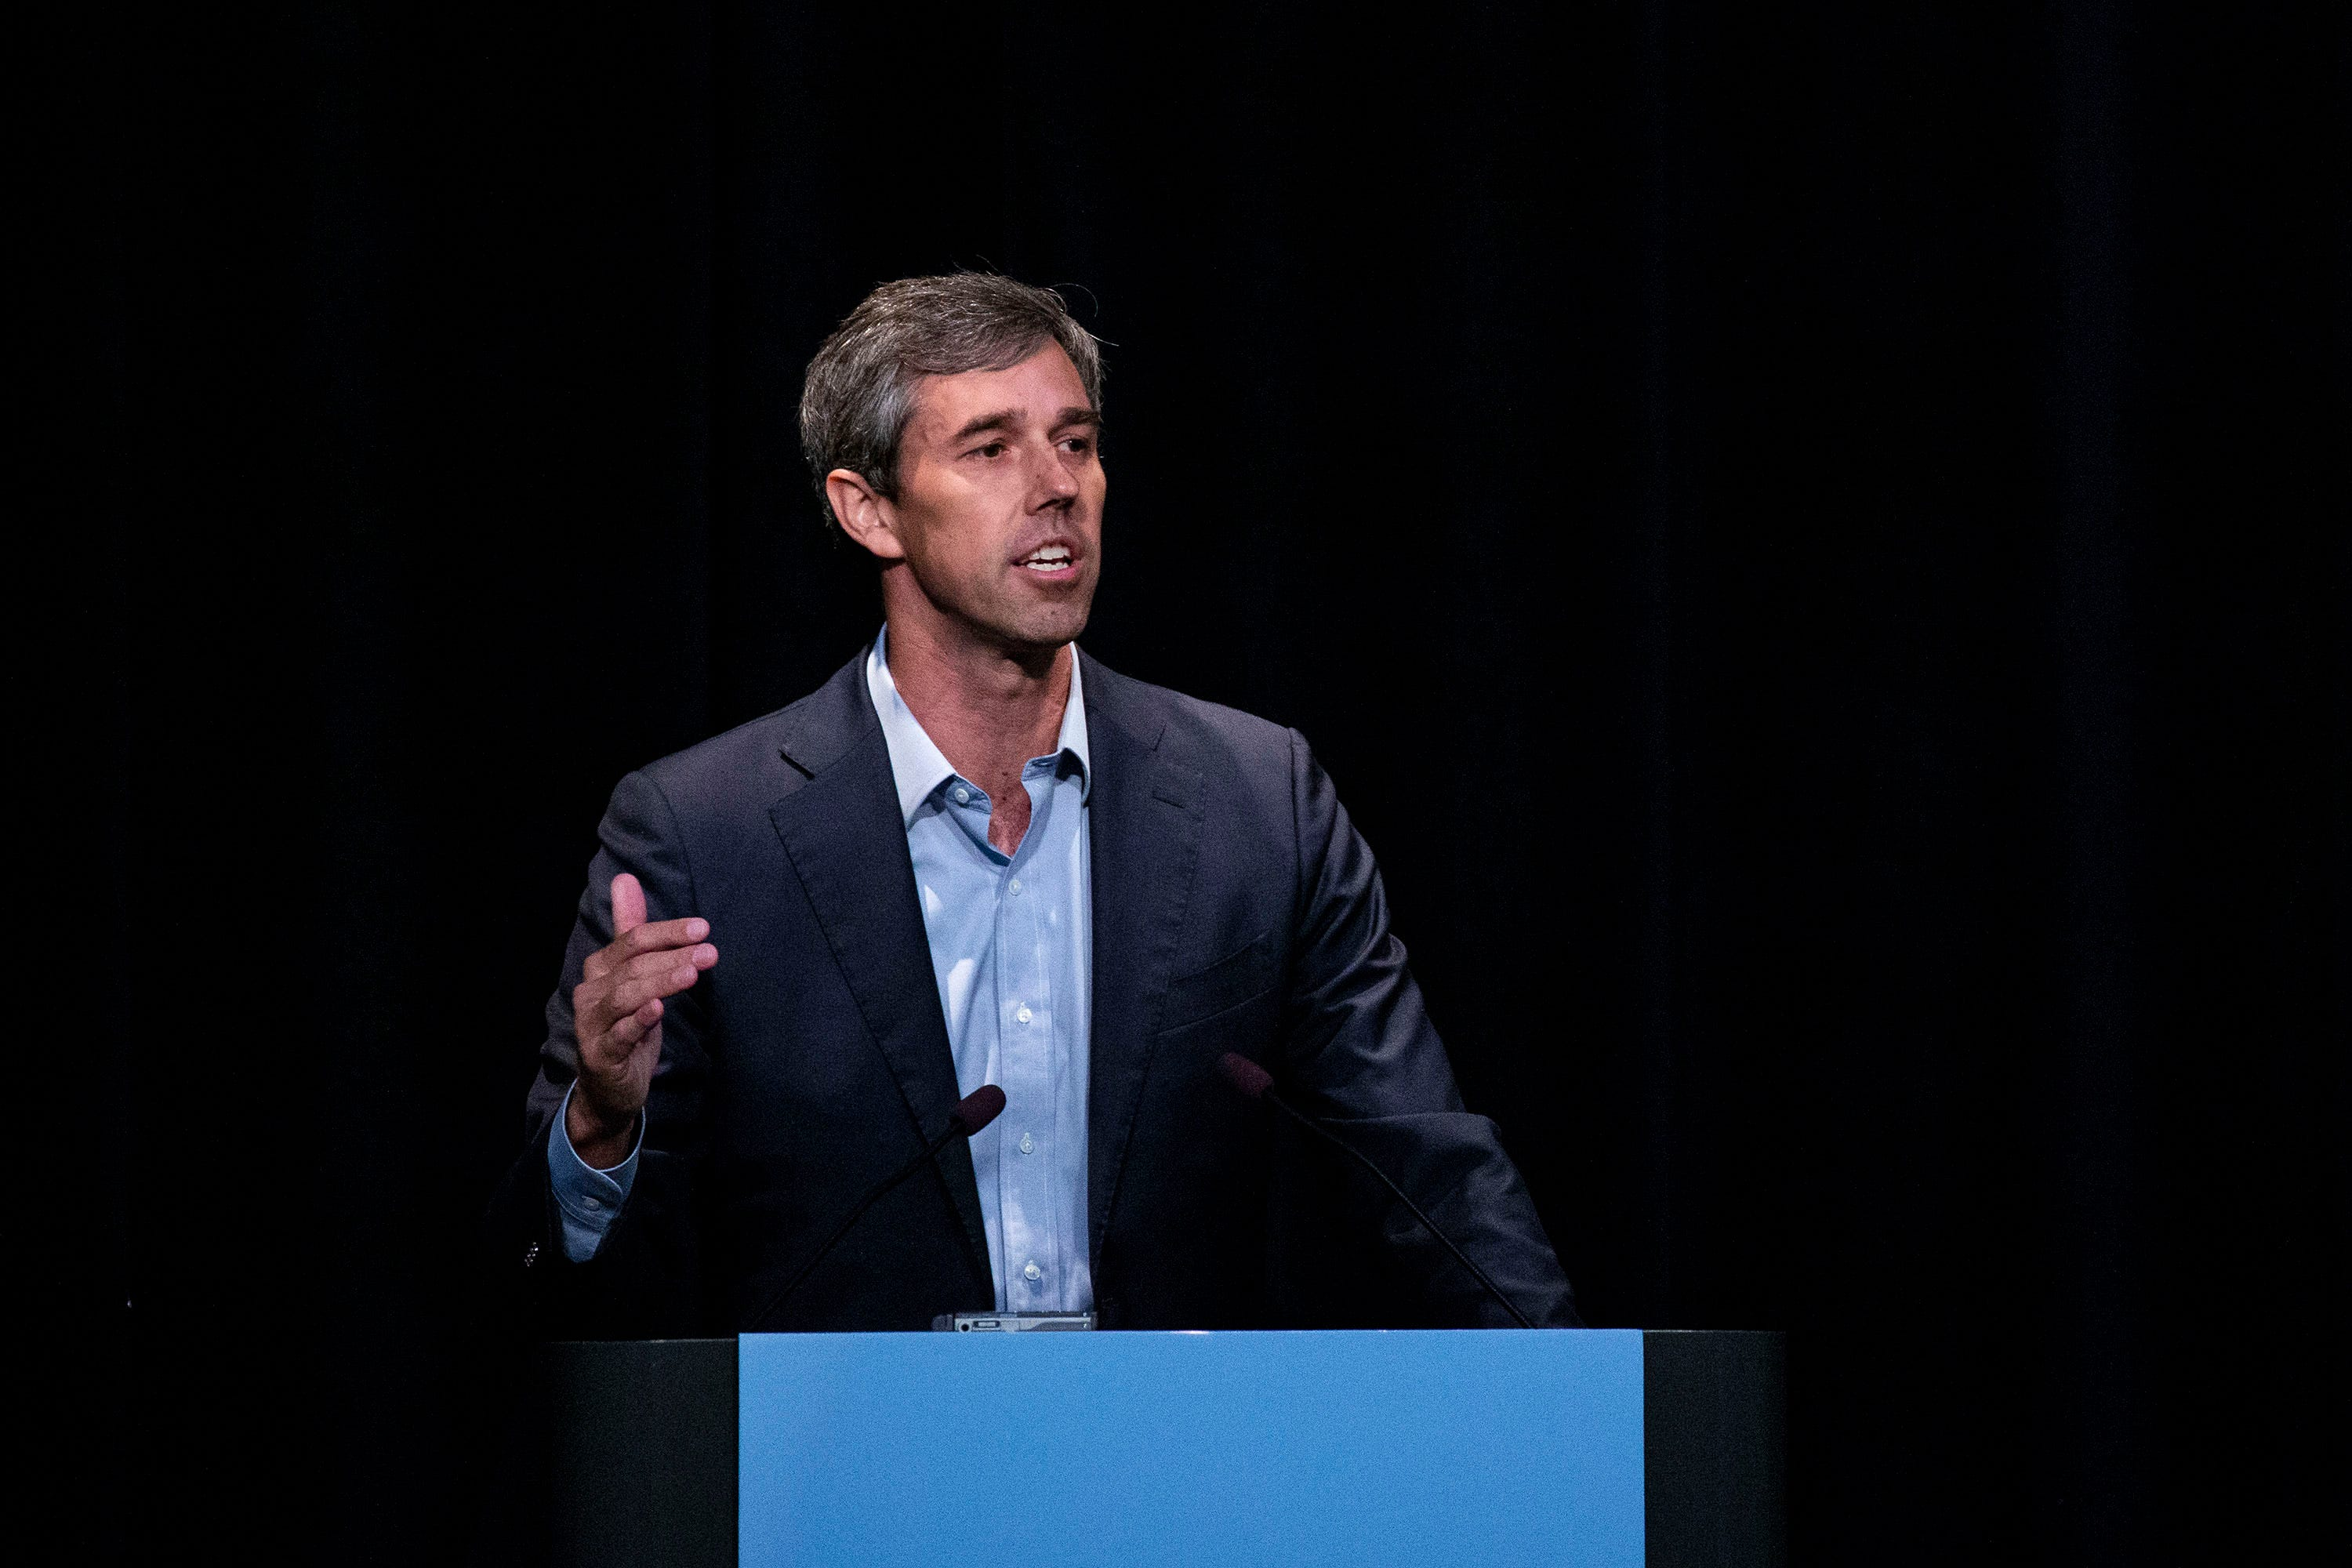 Full speech: Beto O'Rourke at Iowa labor convention